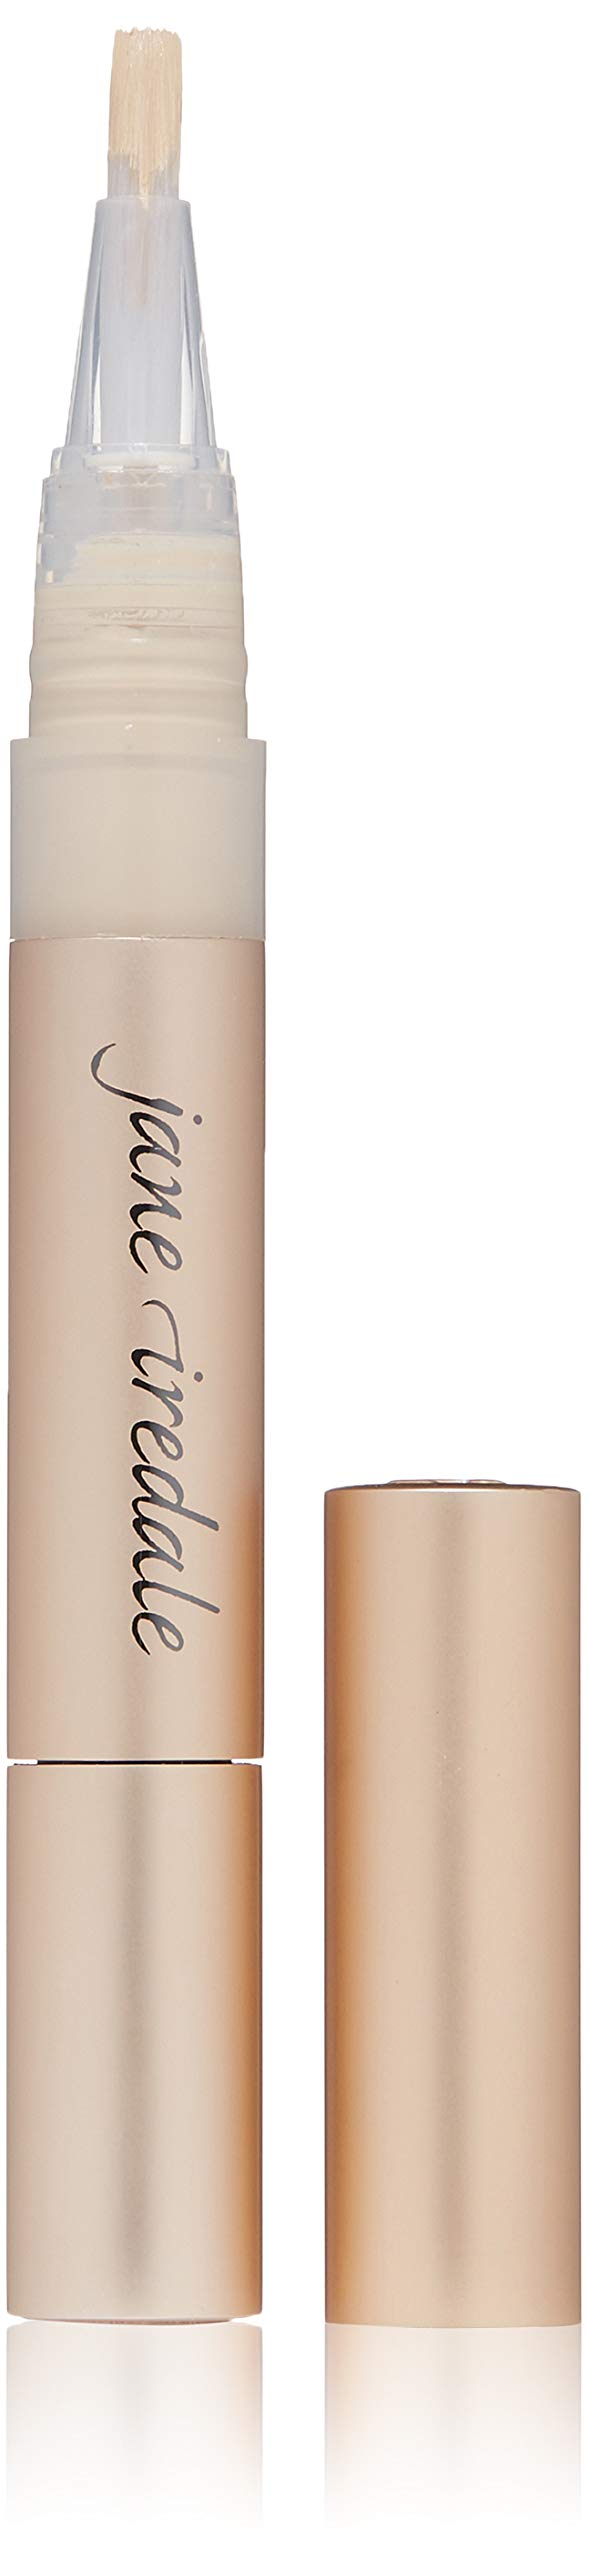 jane iredale Active Light Under-Eye Concealer, No.1, 0.07 Oz.